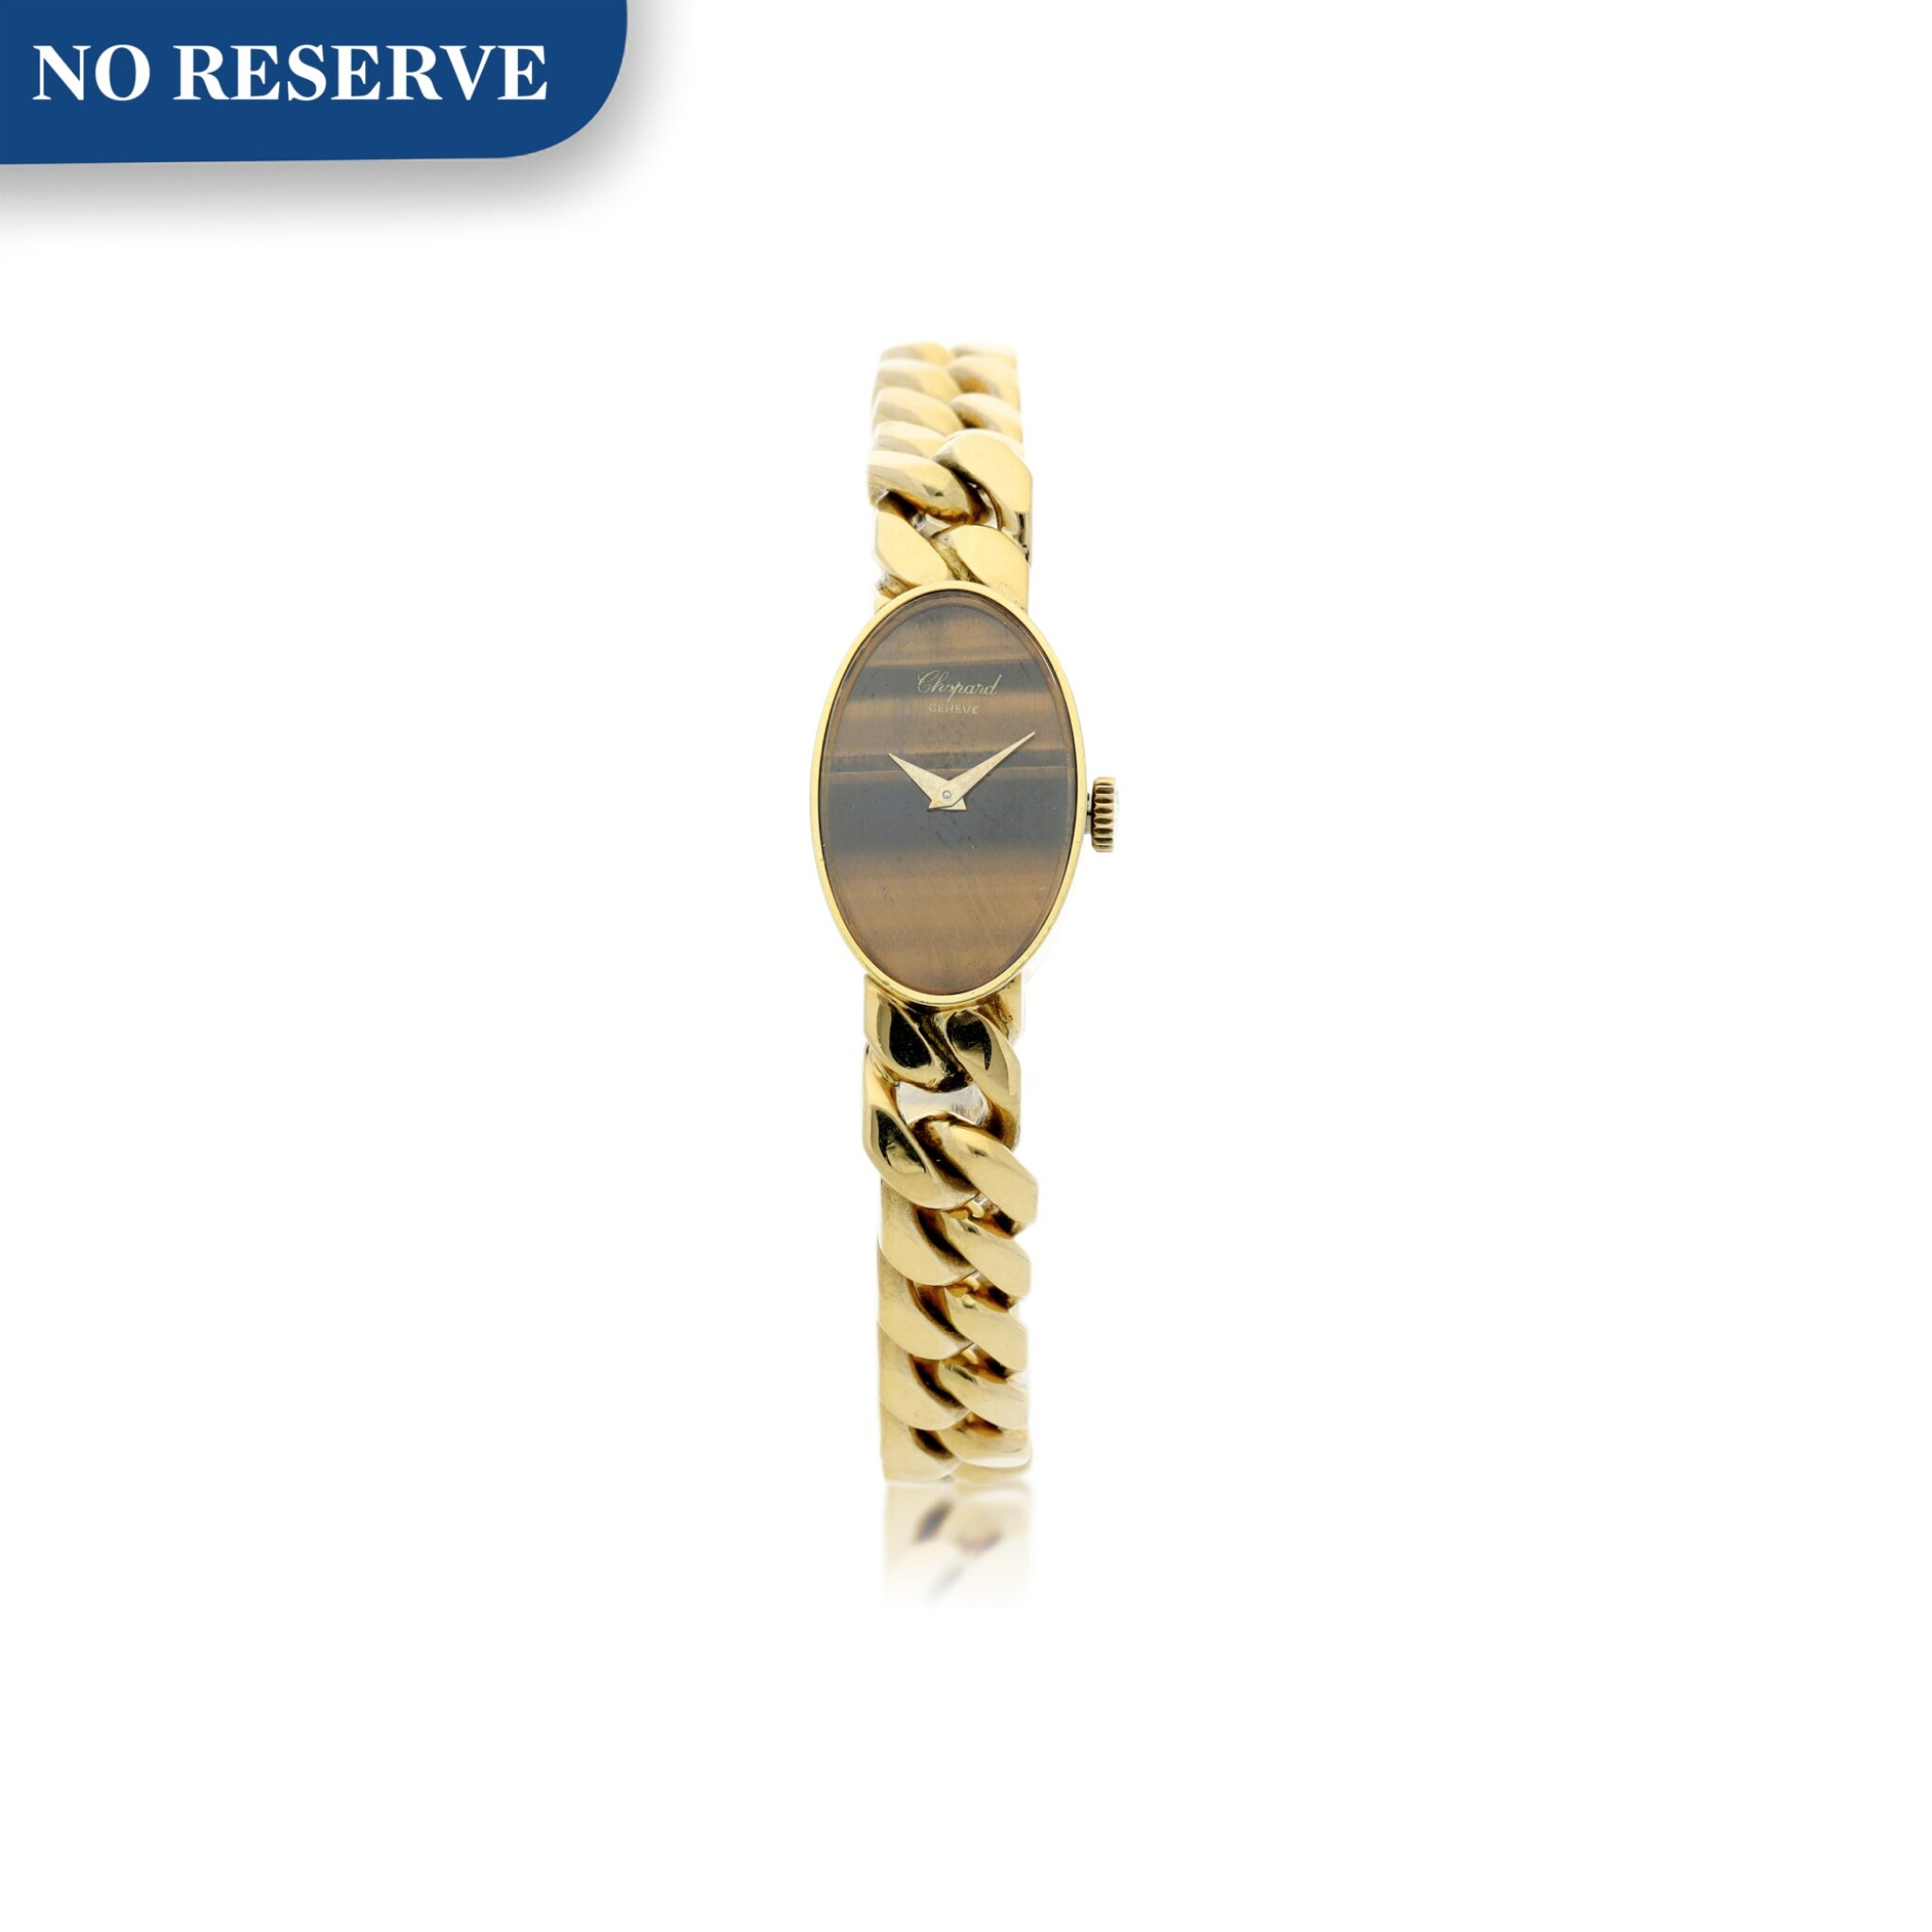 View full screen - View 1 of Lot 221. REFERENCE 5026/1 A LADY'S YELLOW GOLD BRACELET WATCH WITH TIGER EYE DIAL, CIRCA 1990'S.